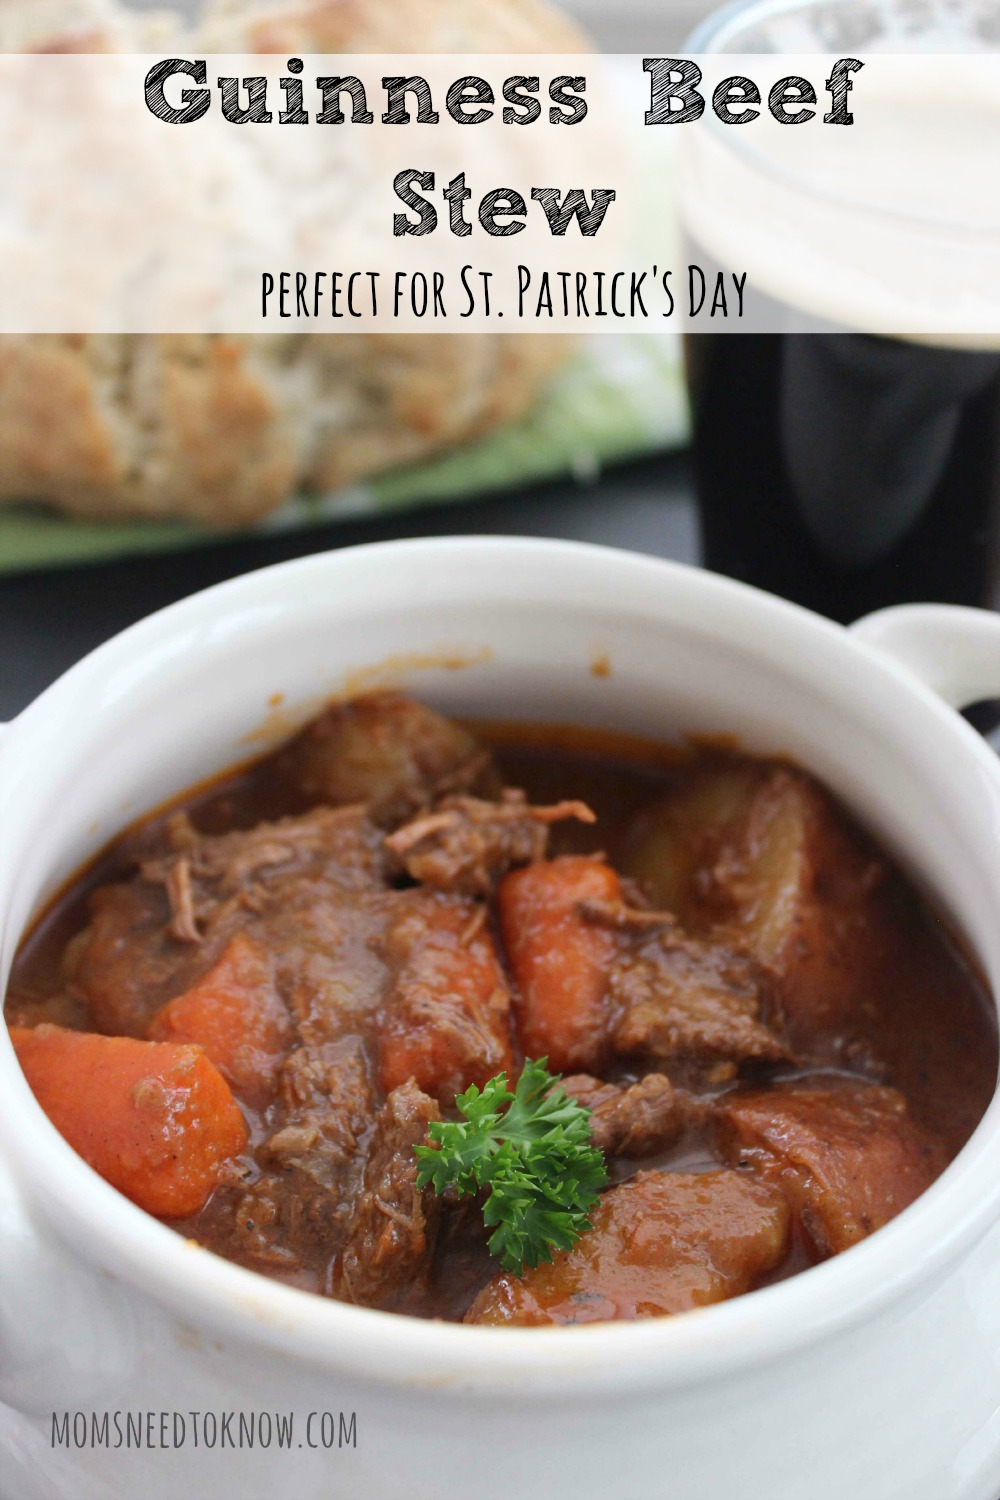 This Guinness Beef Stew recipe is so hearty and comforting on a cold winter's day. Perfect for St. Patrick's Day or any day of the year!